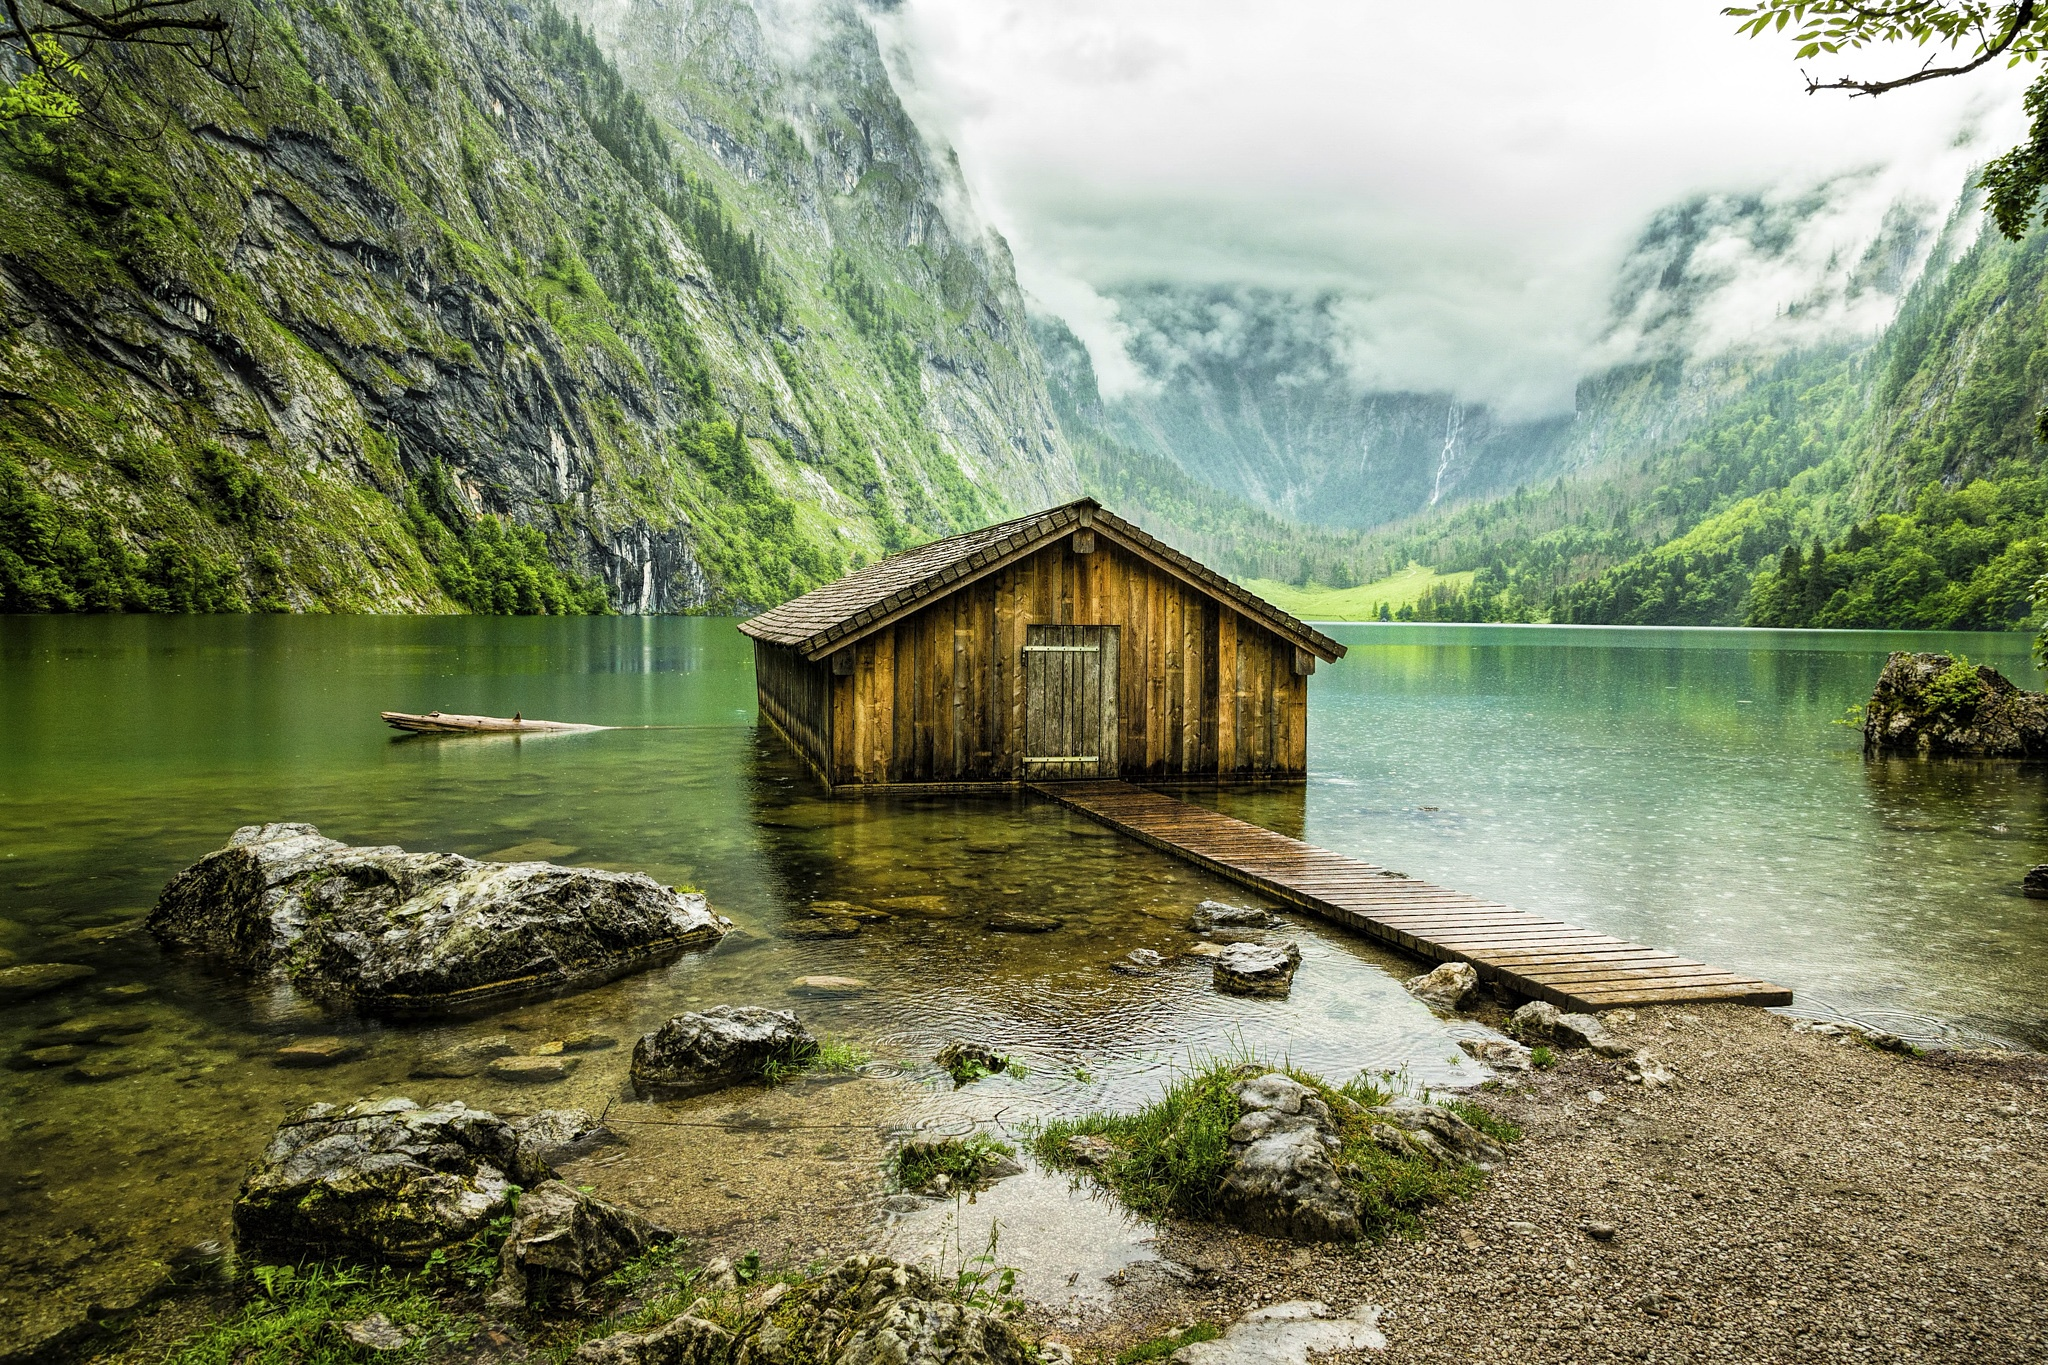 Boathouse on Obersee by Mladen Bozickovic